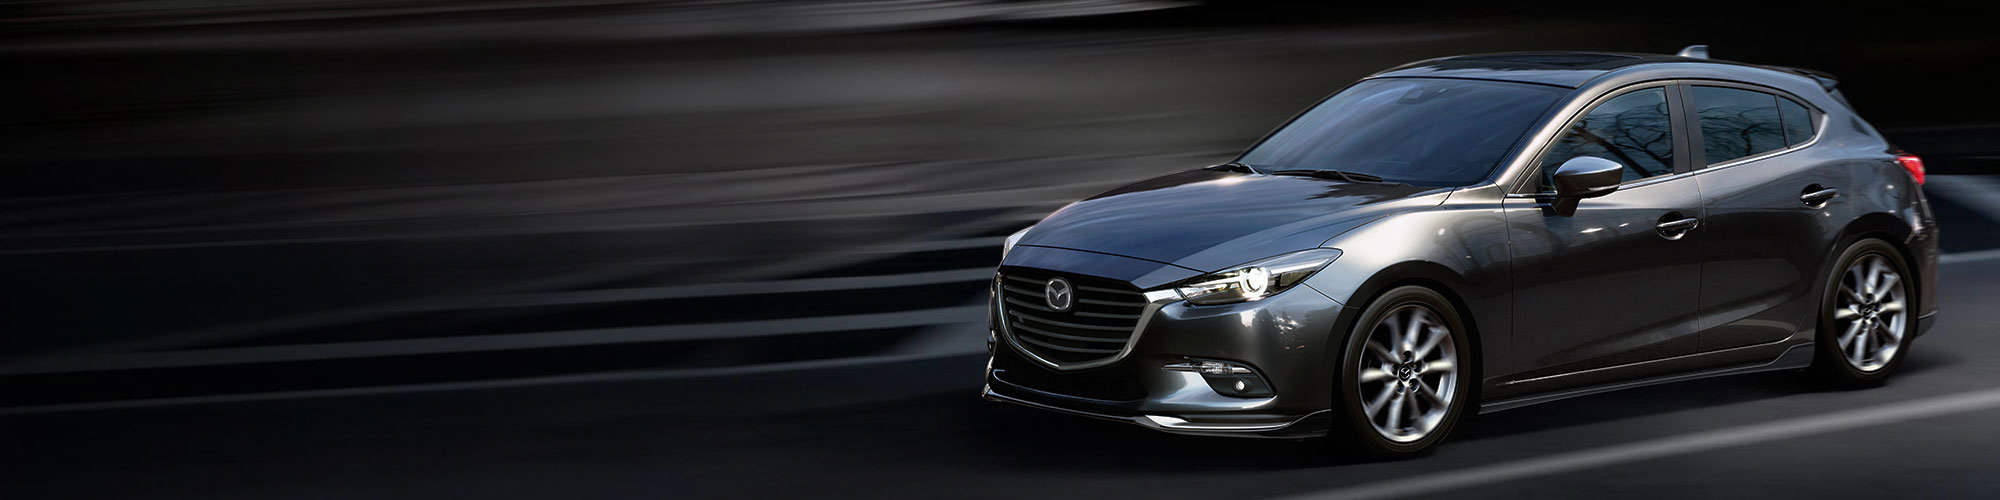 Why Finance with Lee Partyka Mazda?